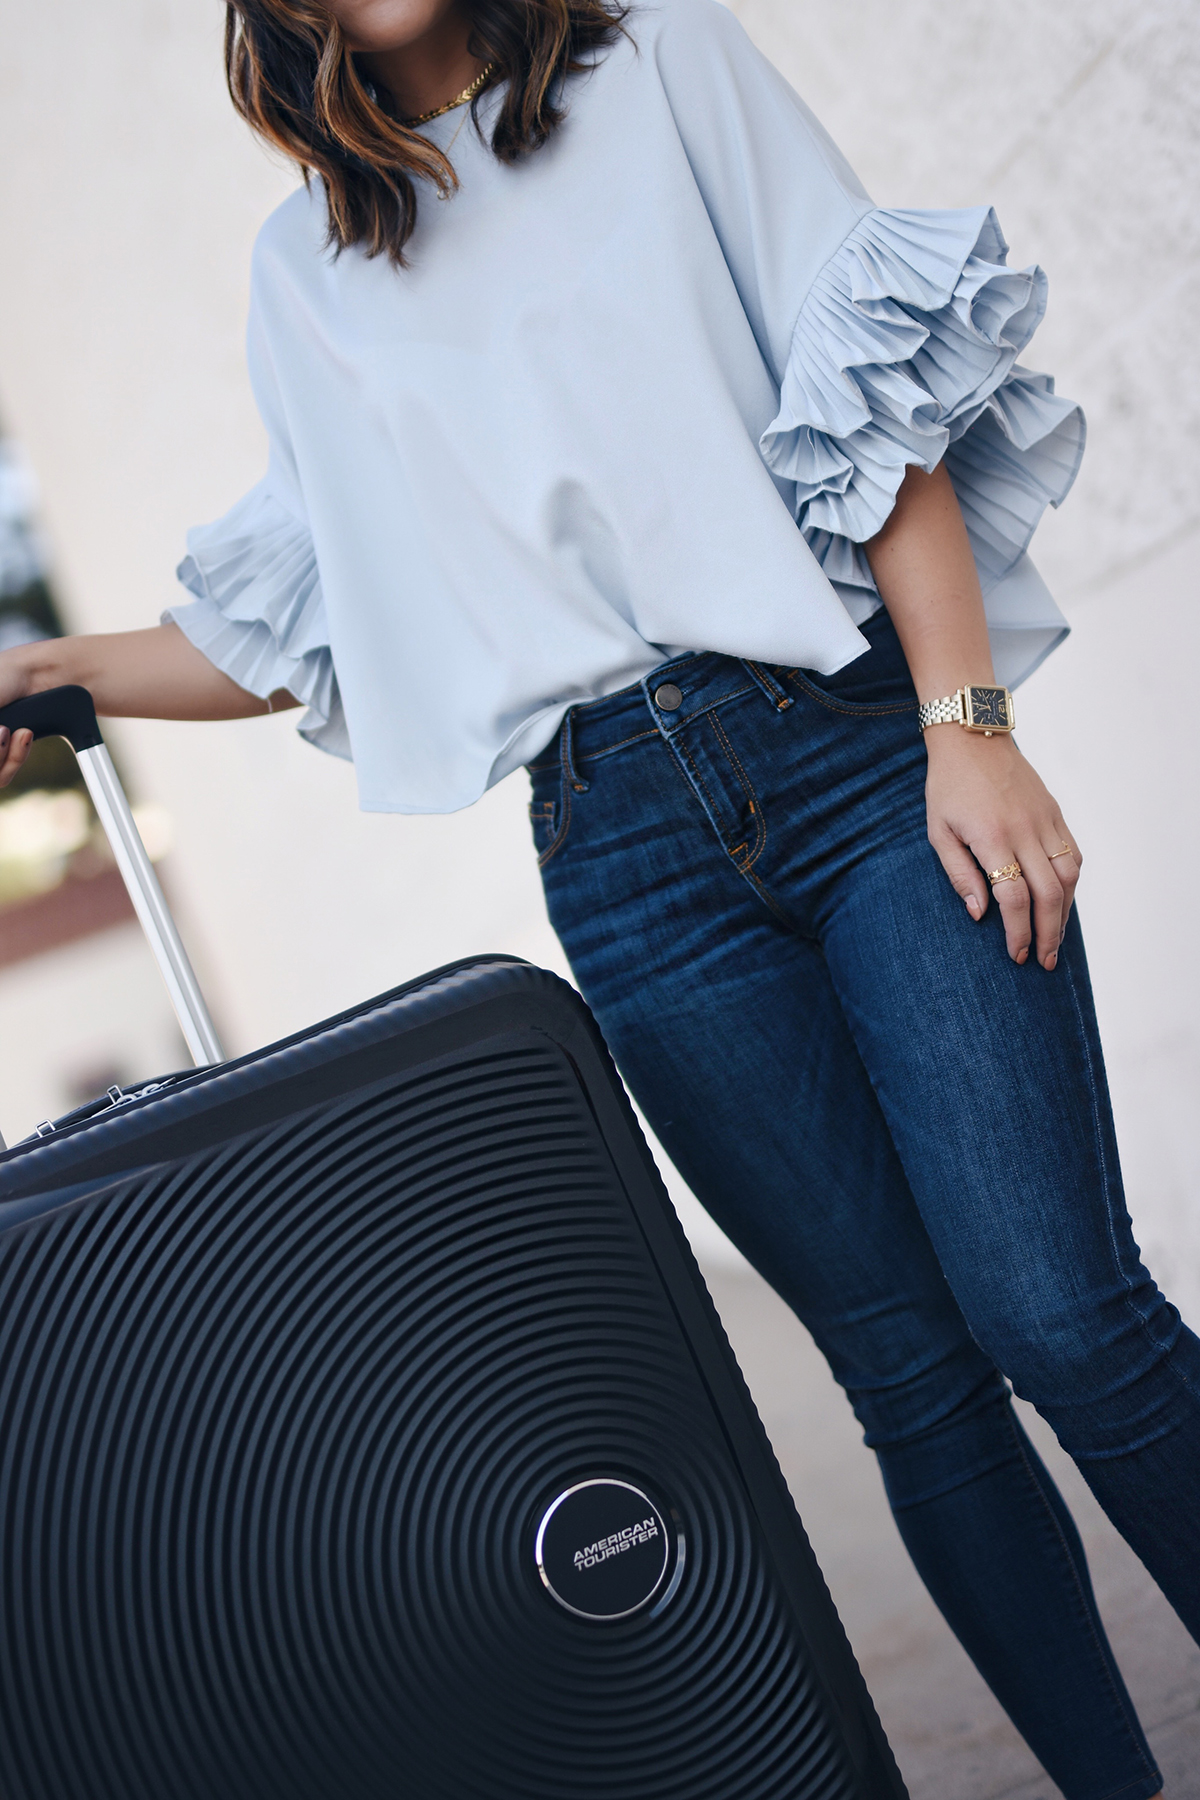 Carolina Hellal of Chic Talk with the American Tourister Curio bag in black.